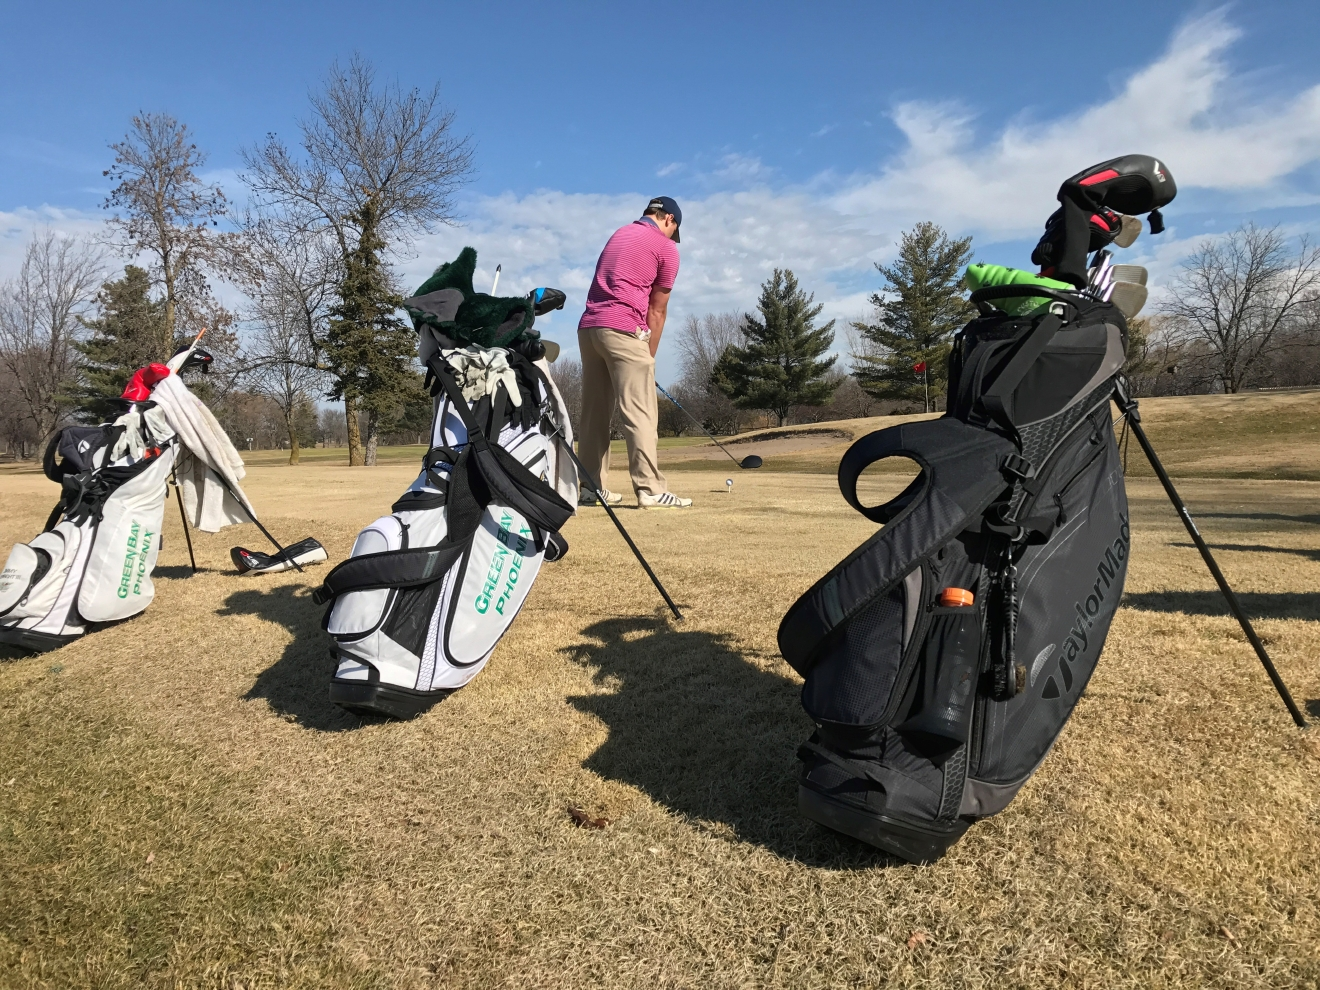 Golfers enjoy a game at the Woods Golf Club in Green Bay Wednesday, Feb. 22, 2017. (WLUK/Gabrielle Mays)